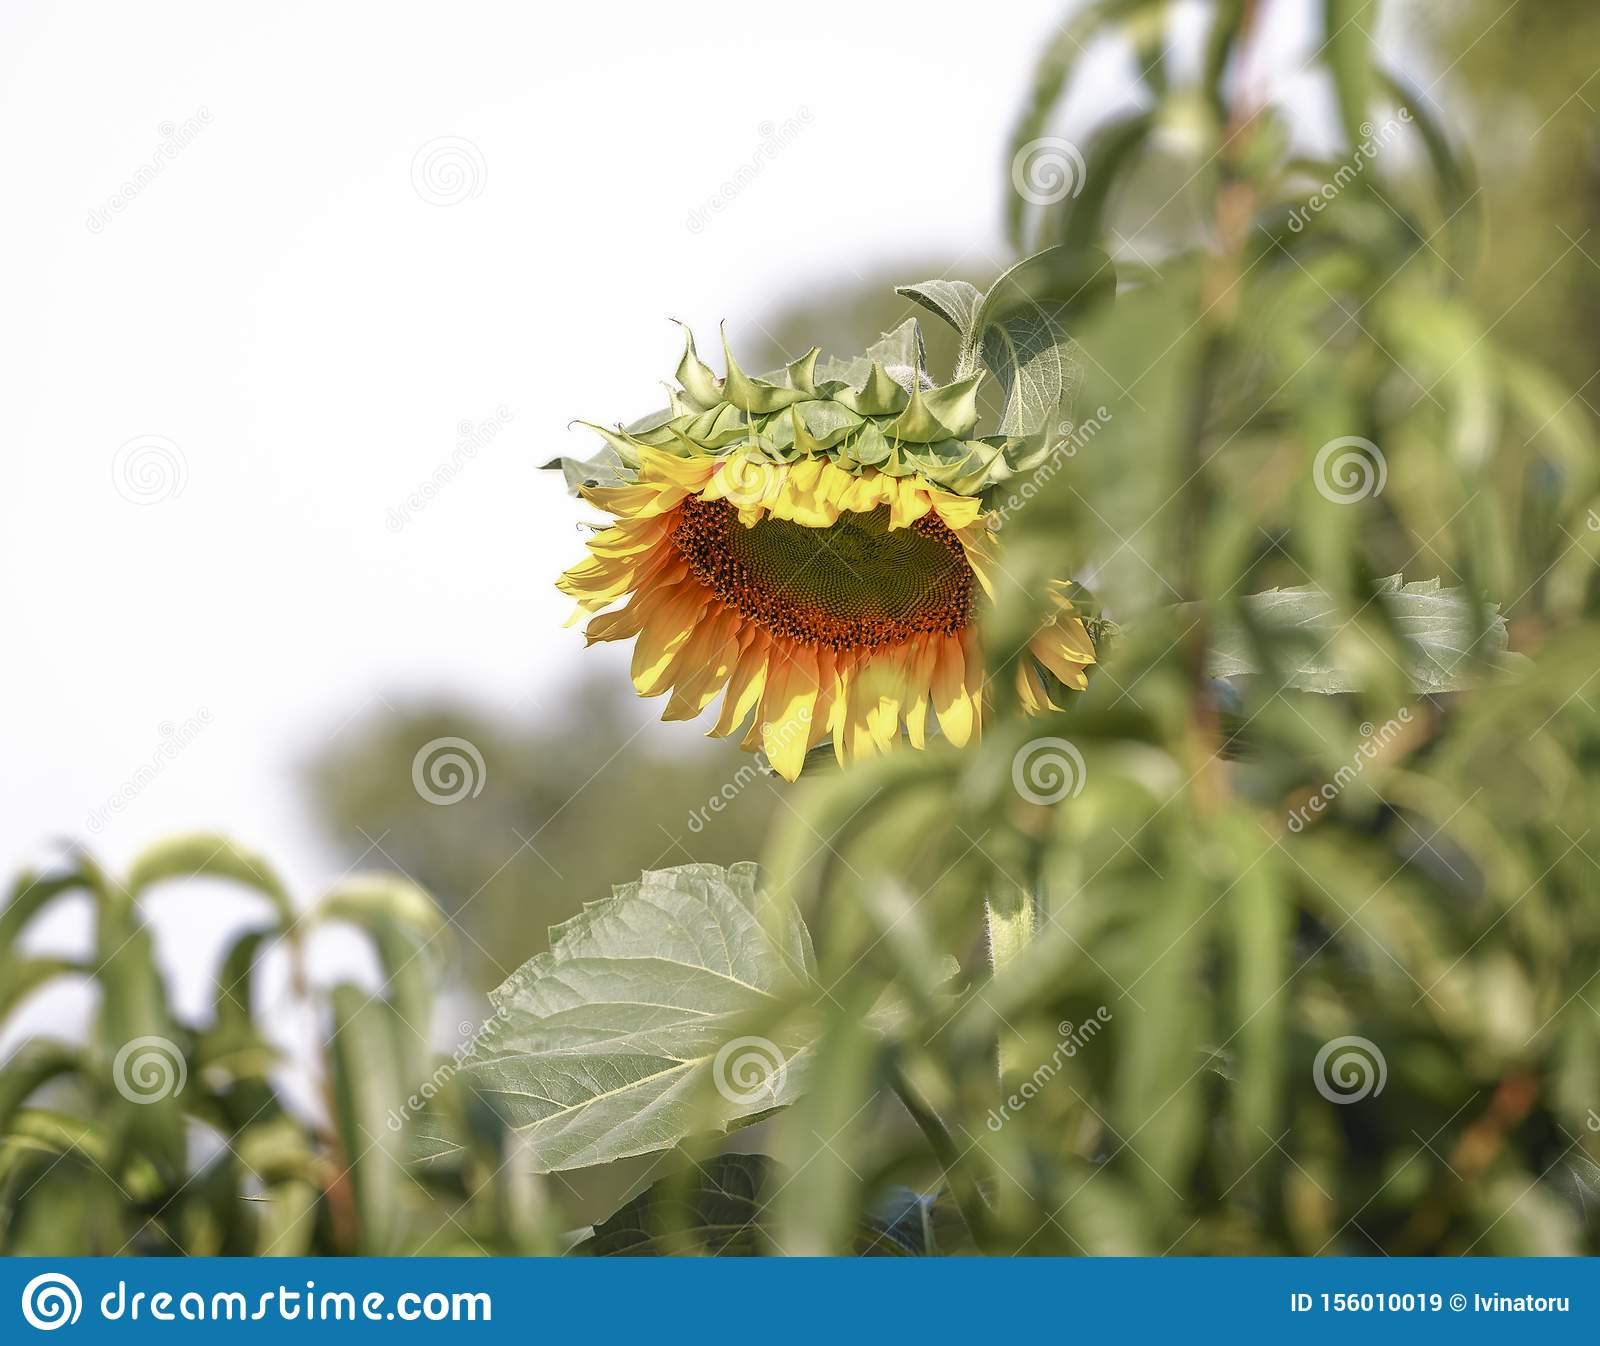 Single sunflower in the field on a sunny day